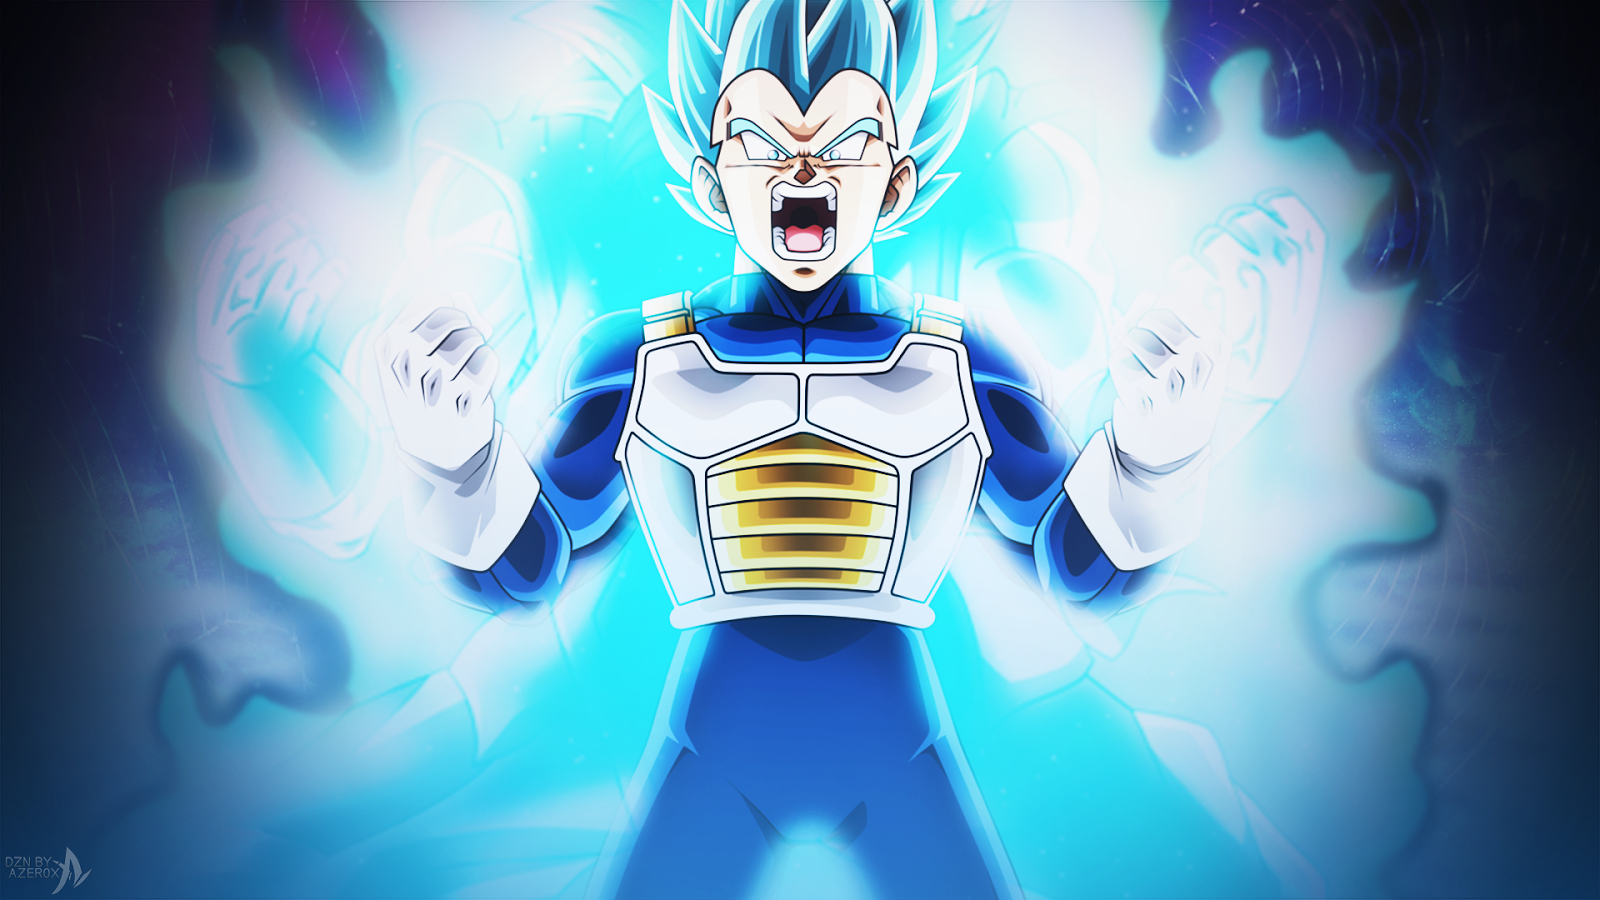 download wallpaper dragon ball super hd 4k free goku vegeta gohan